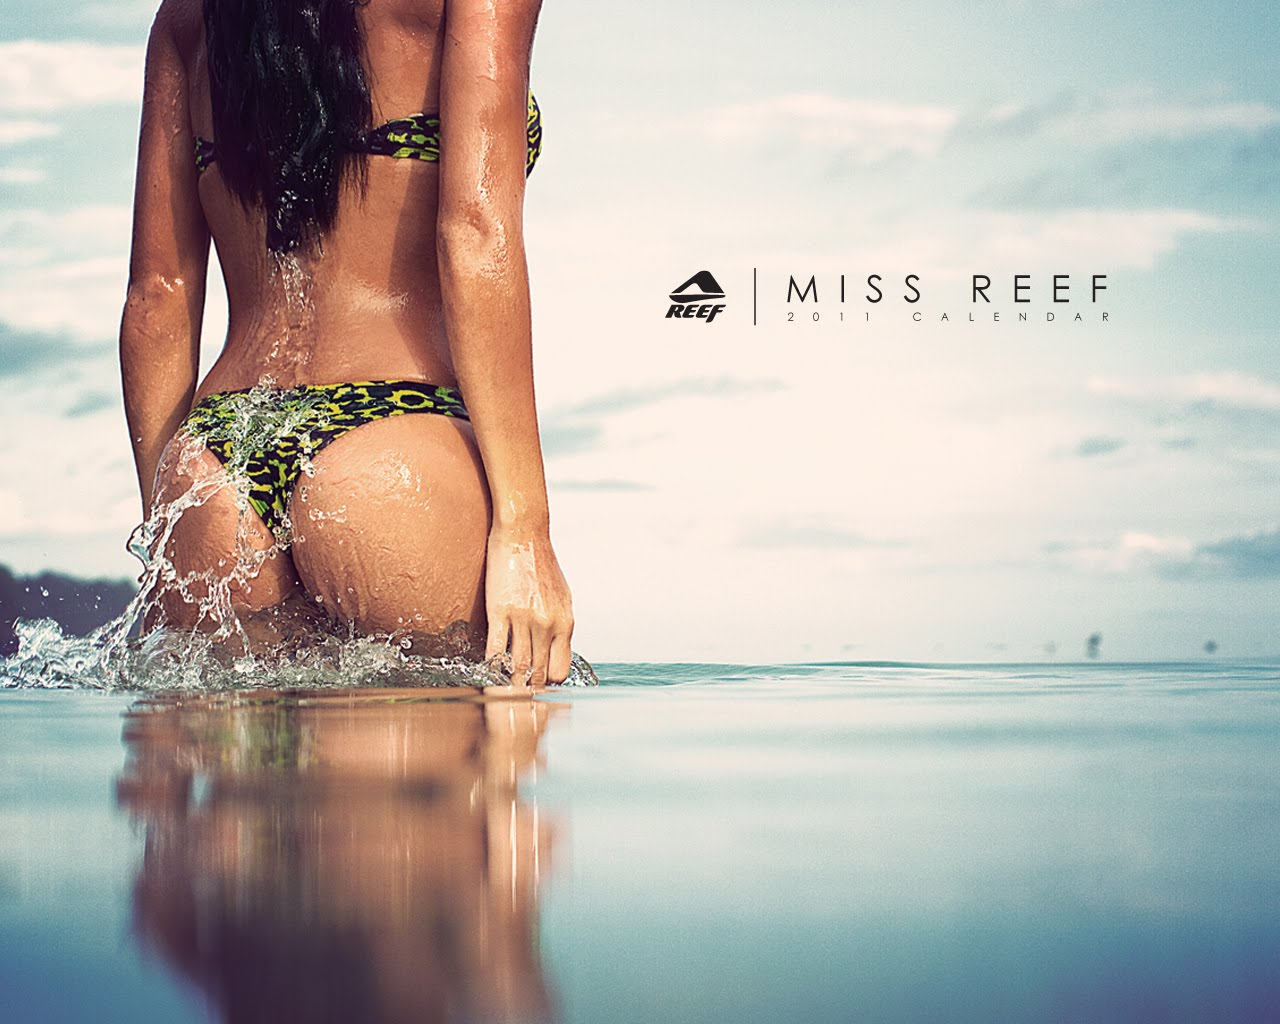 Calendrier Miss Reef 2011 Disponible Au Shop Licious Bodyboard Shop